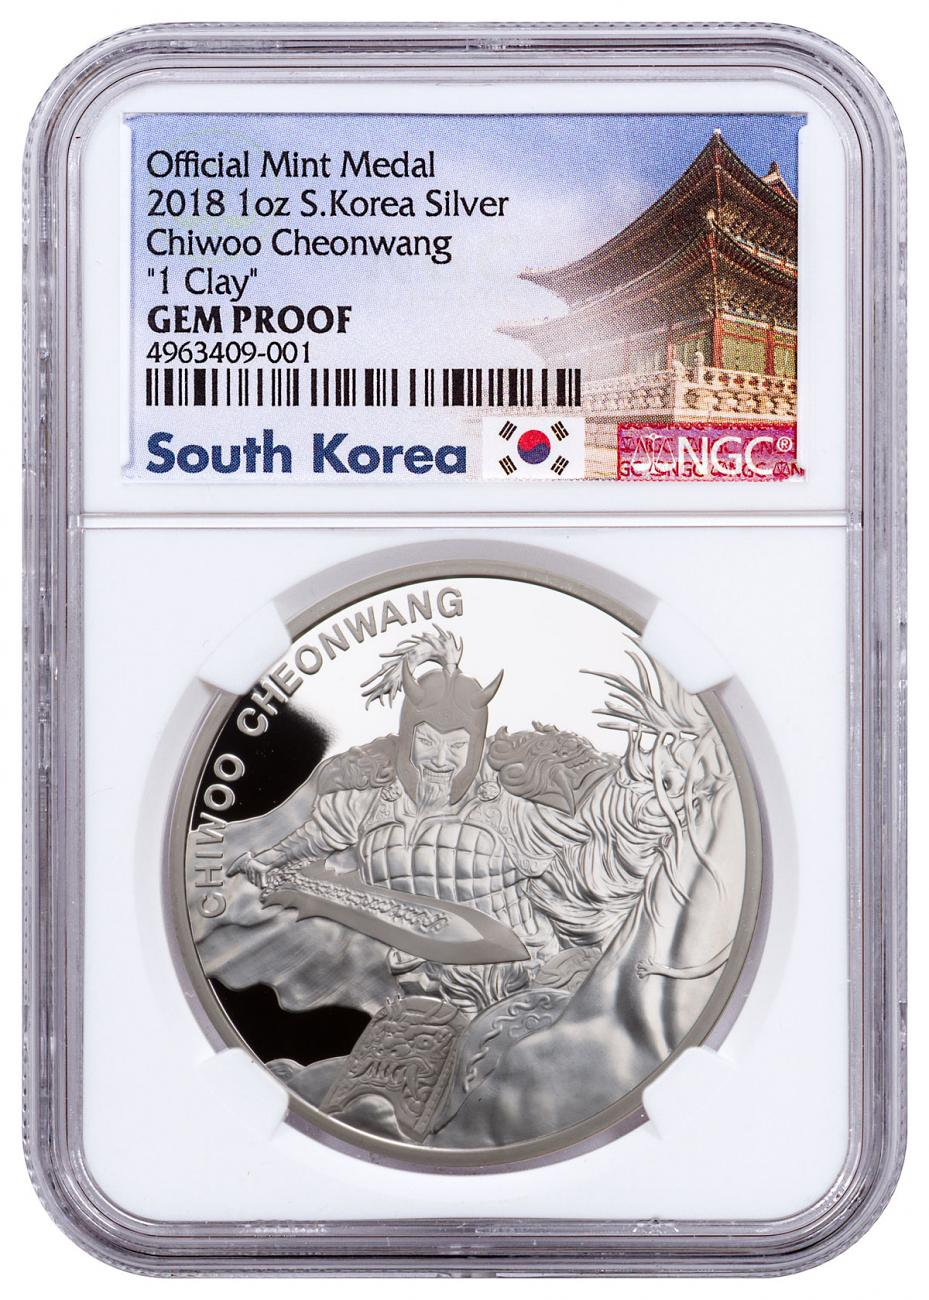 2018 South Korea Chiwoo Cheonwang 1 oz Silver Proof Medal NGC GEM Proof UC Exclusive South Korea Label